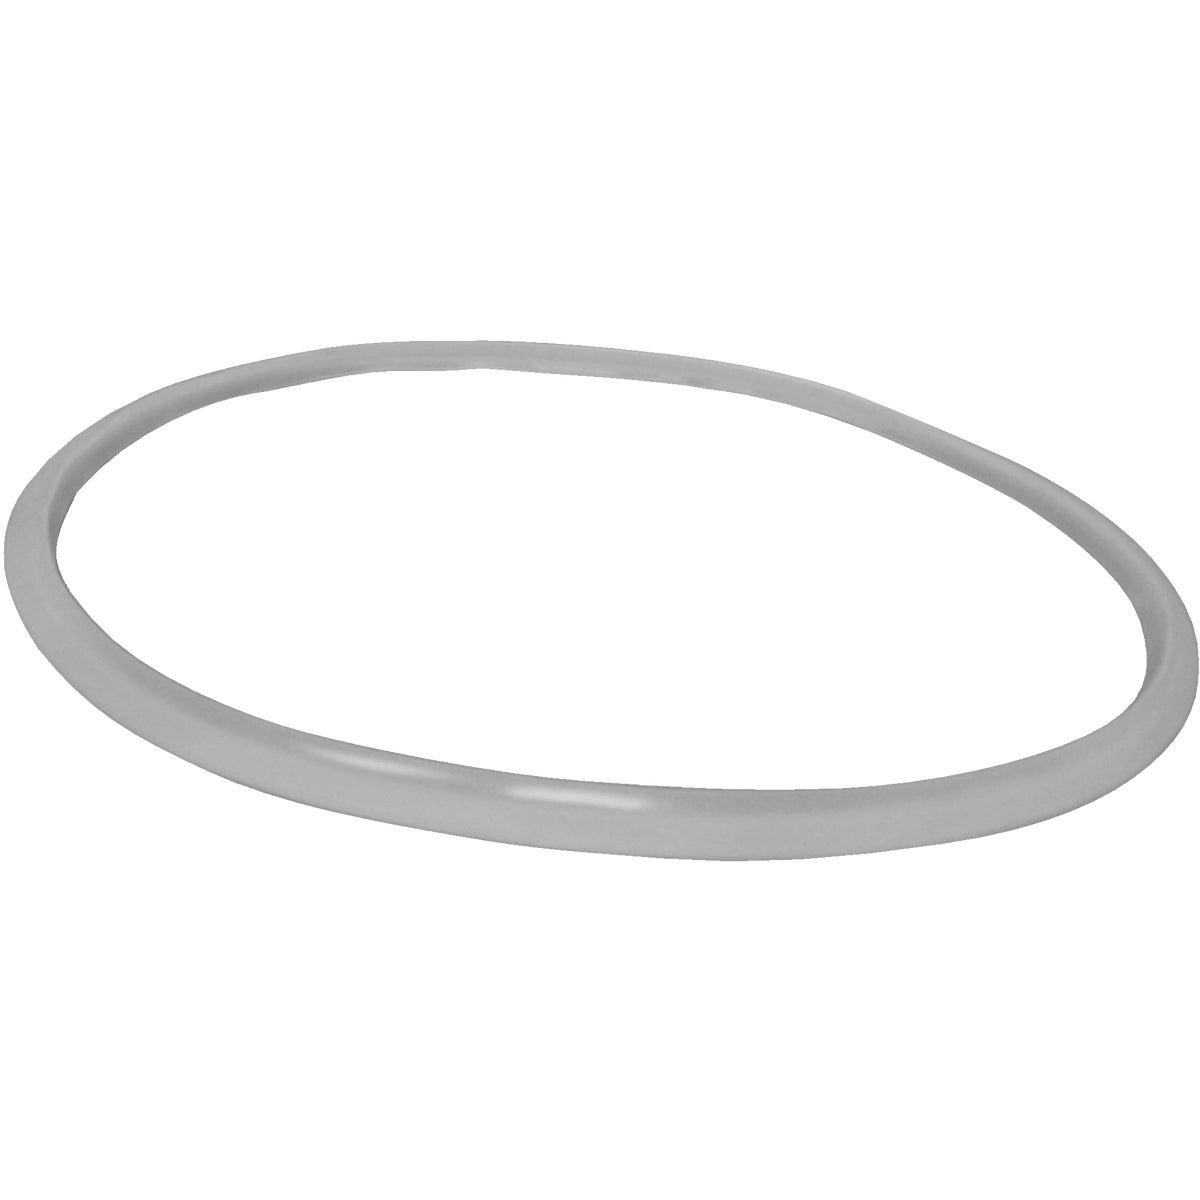 16-22QT REPLACE GASKET